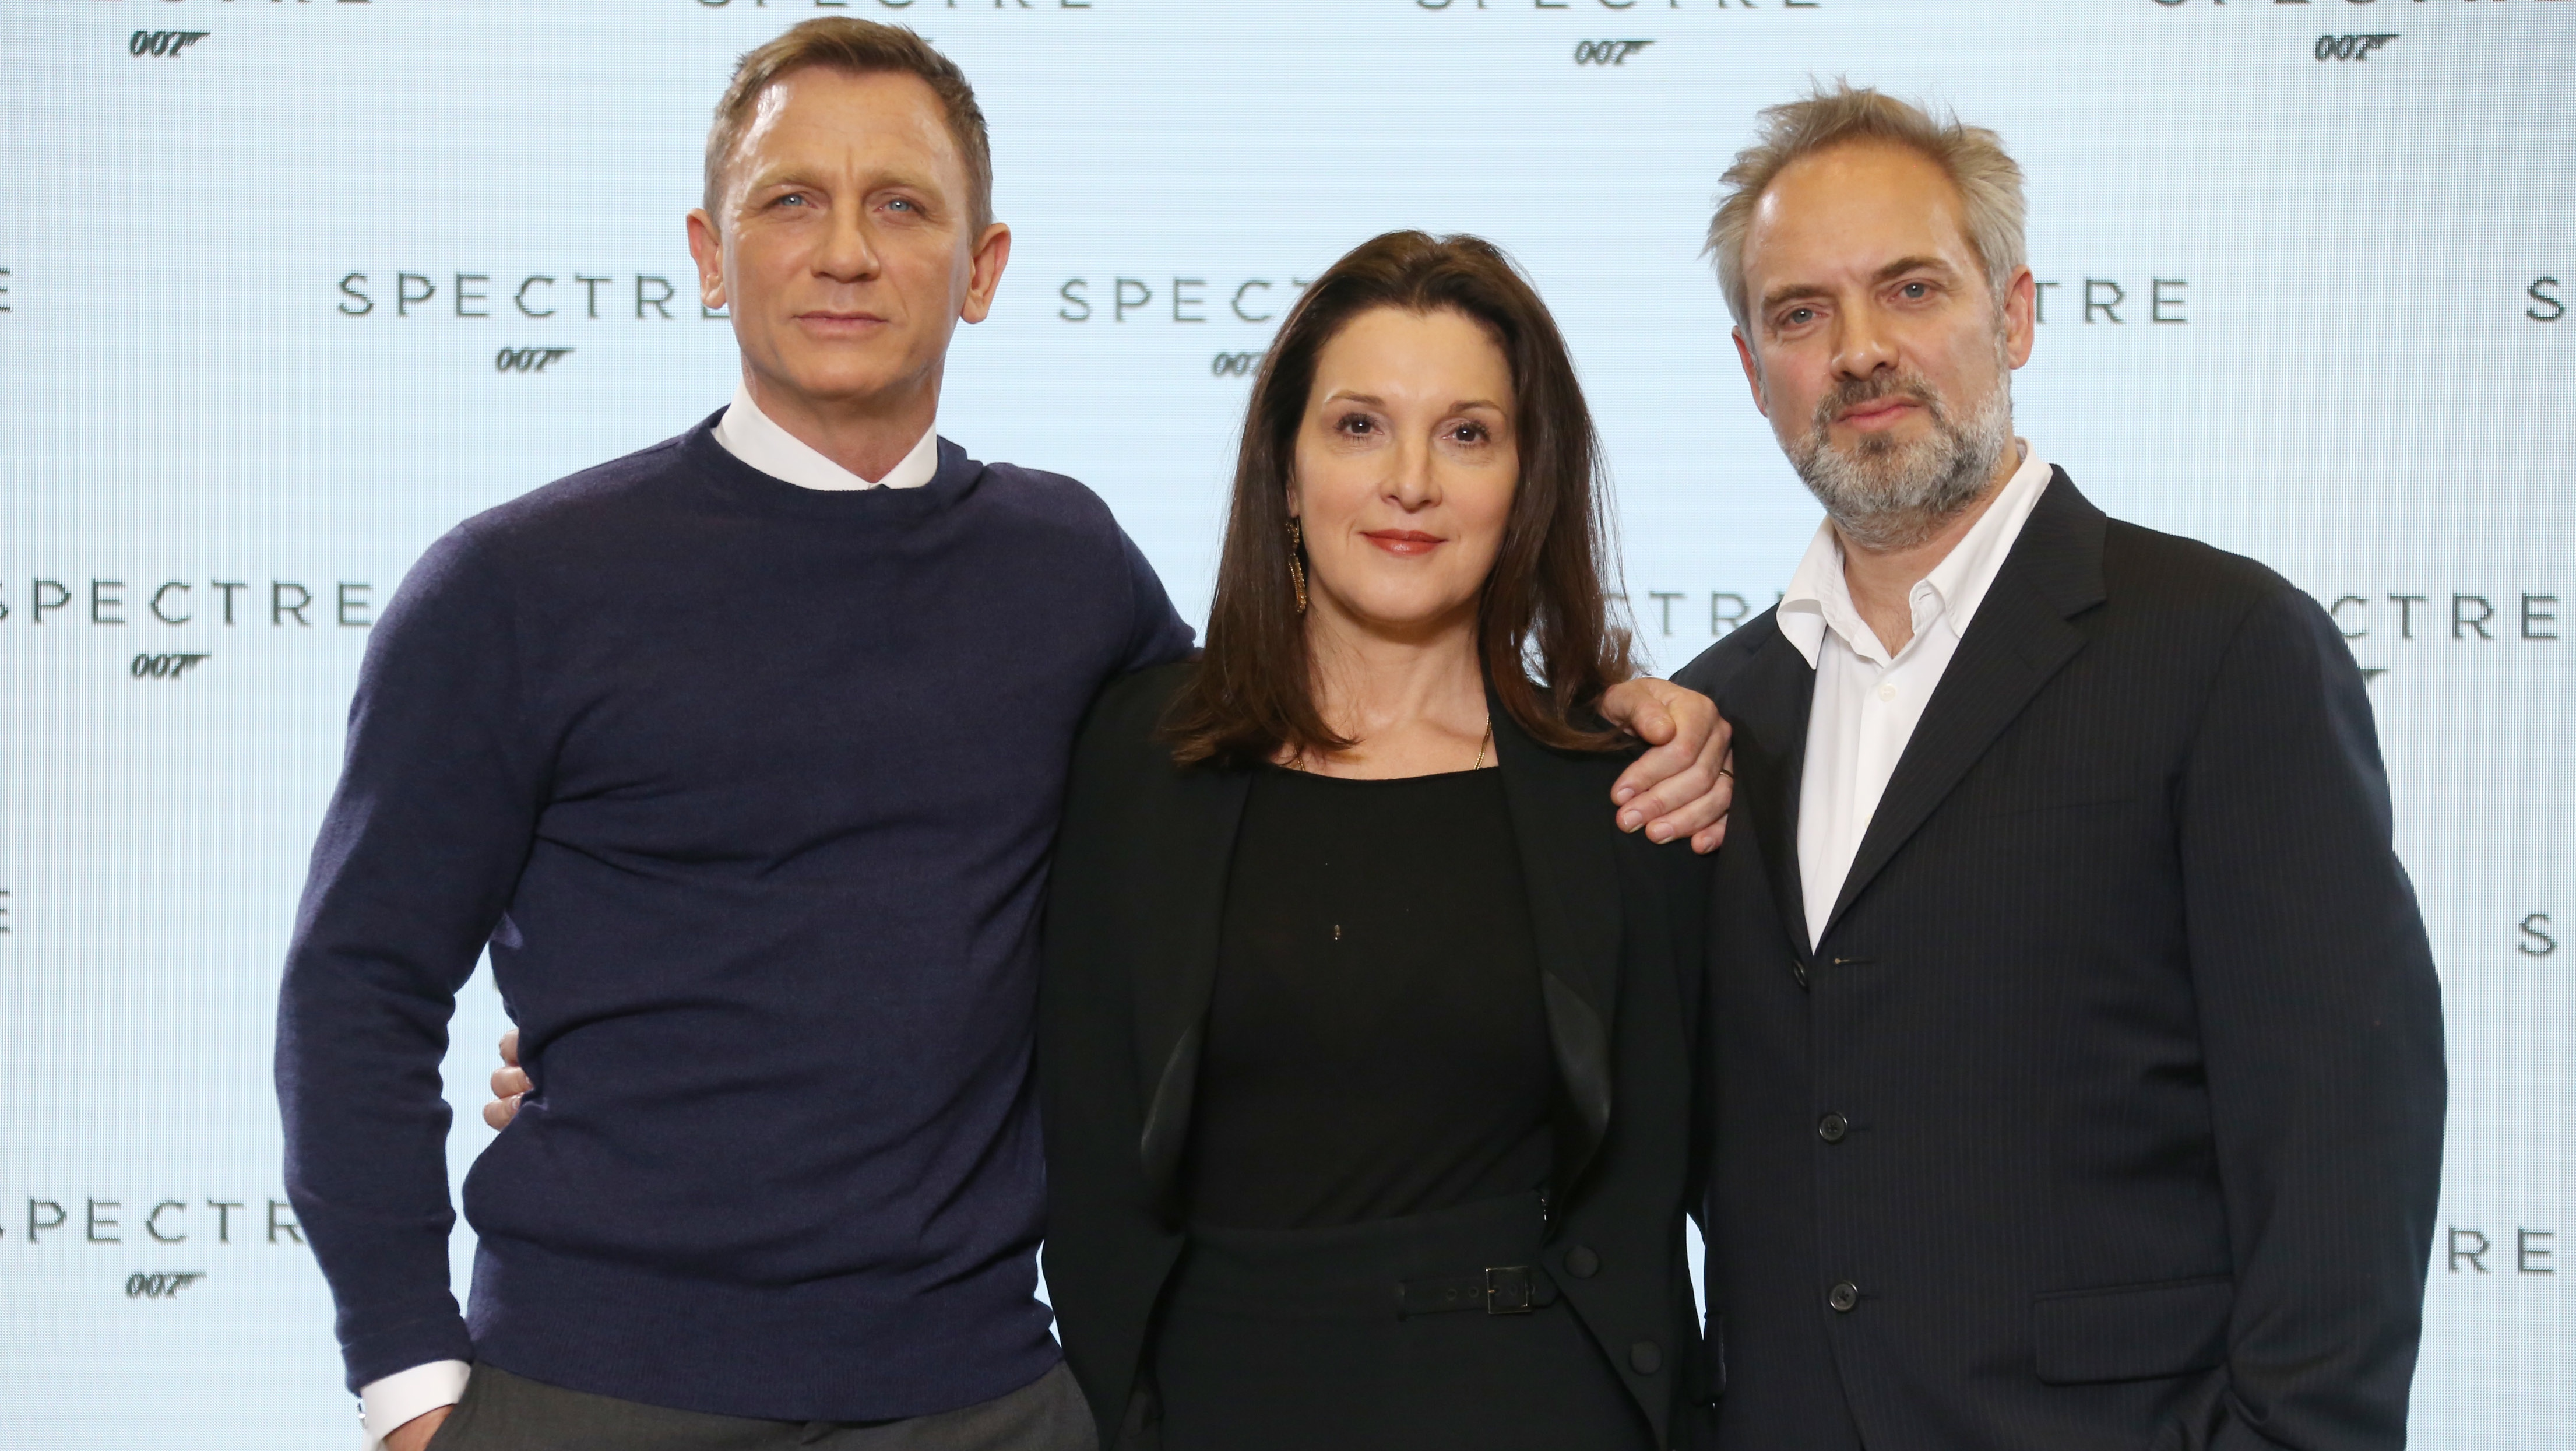 Daniel Craig and Sam Mendes at New James Bond Film 'Spectre' Announcement - H 2014